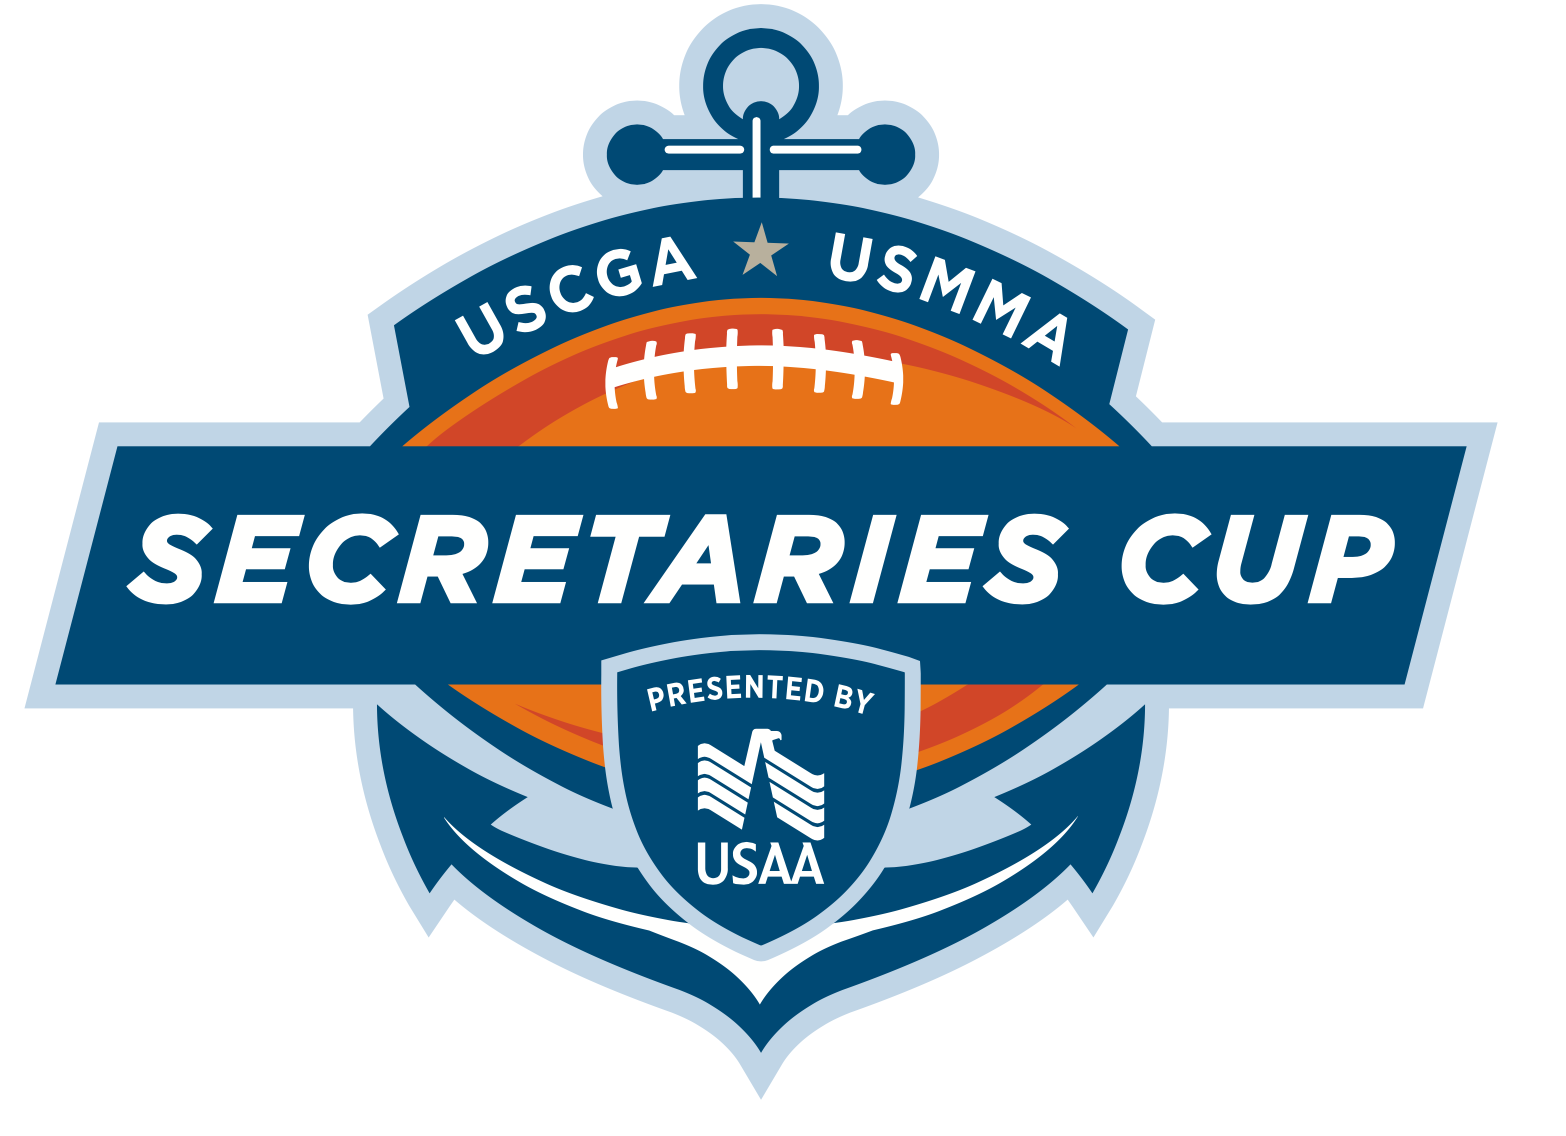 ATTENDING SECRETARIES CUP GAME? – WHAT YOU NEED TO KNOW